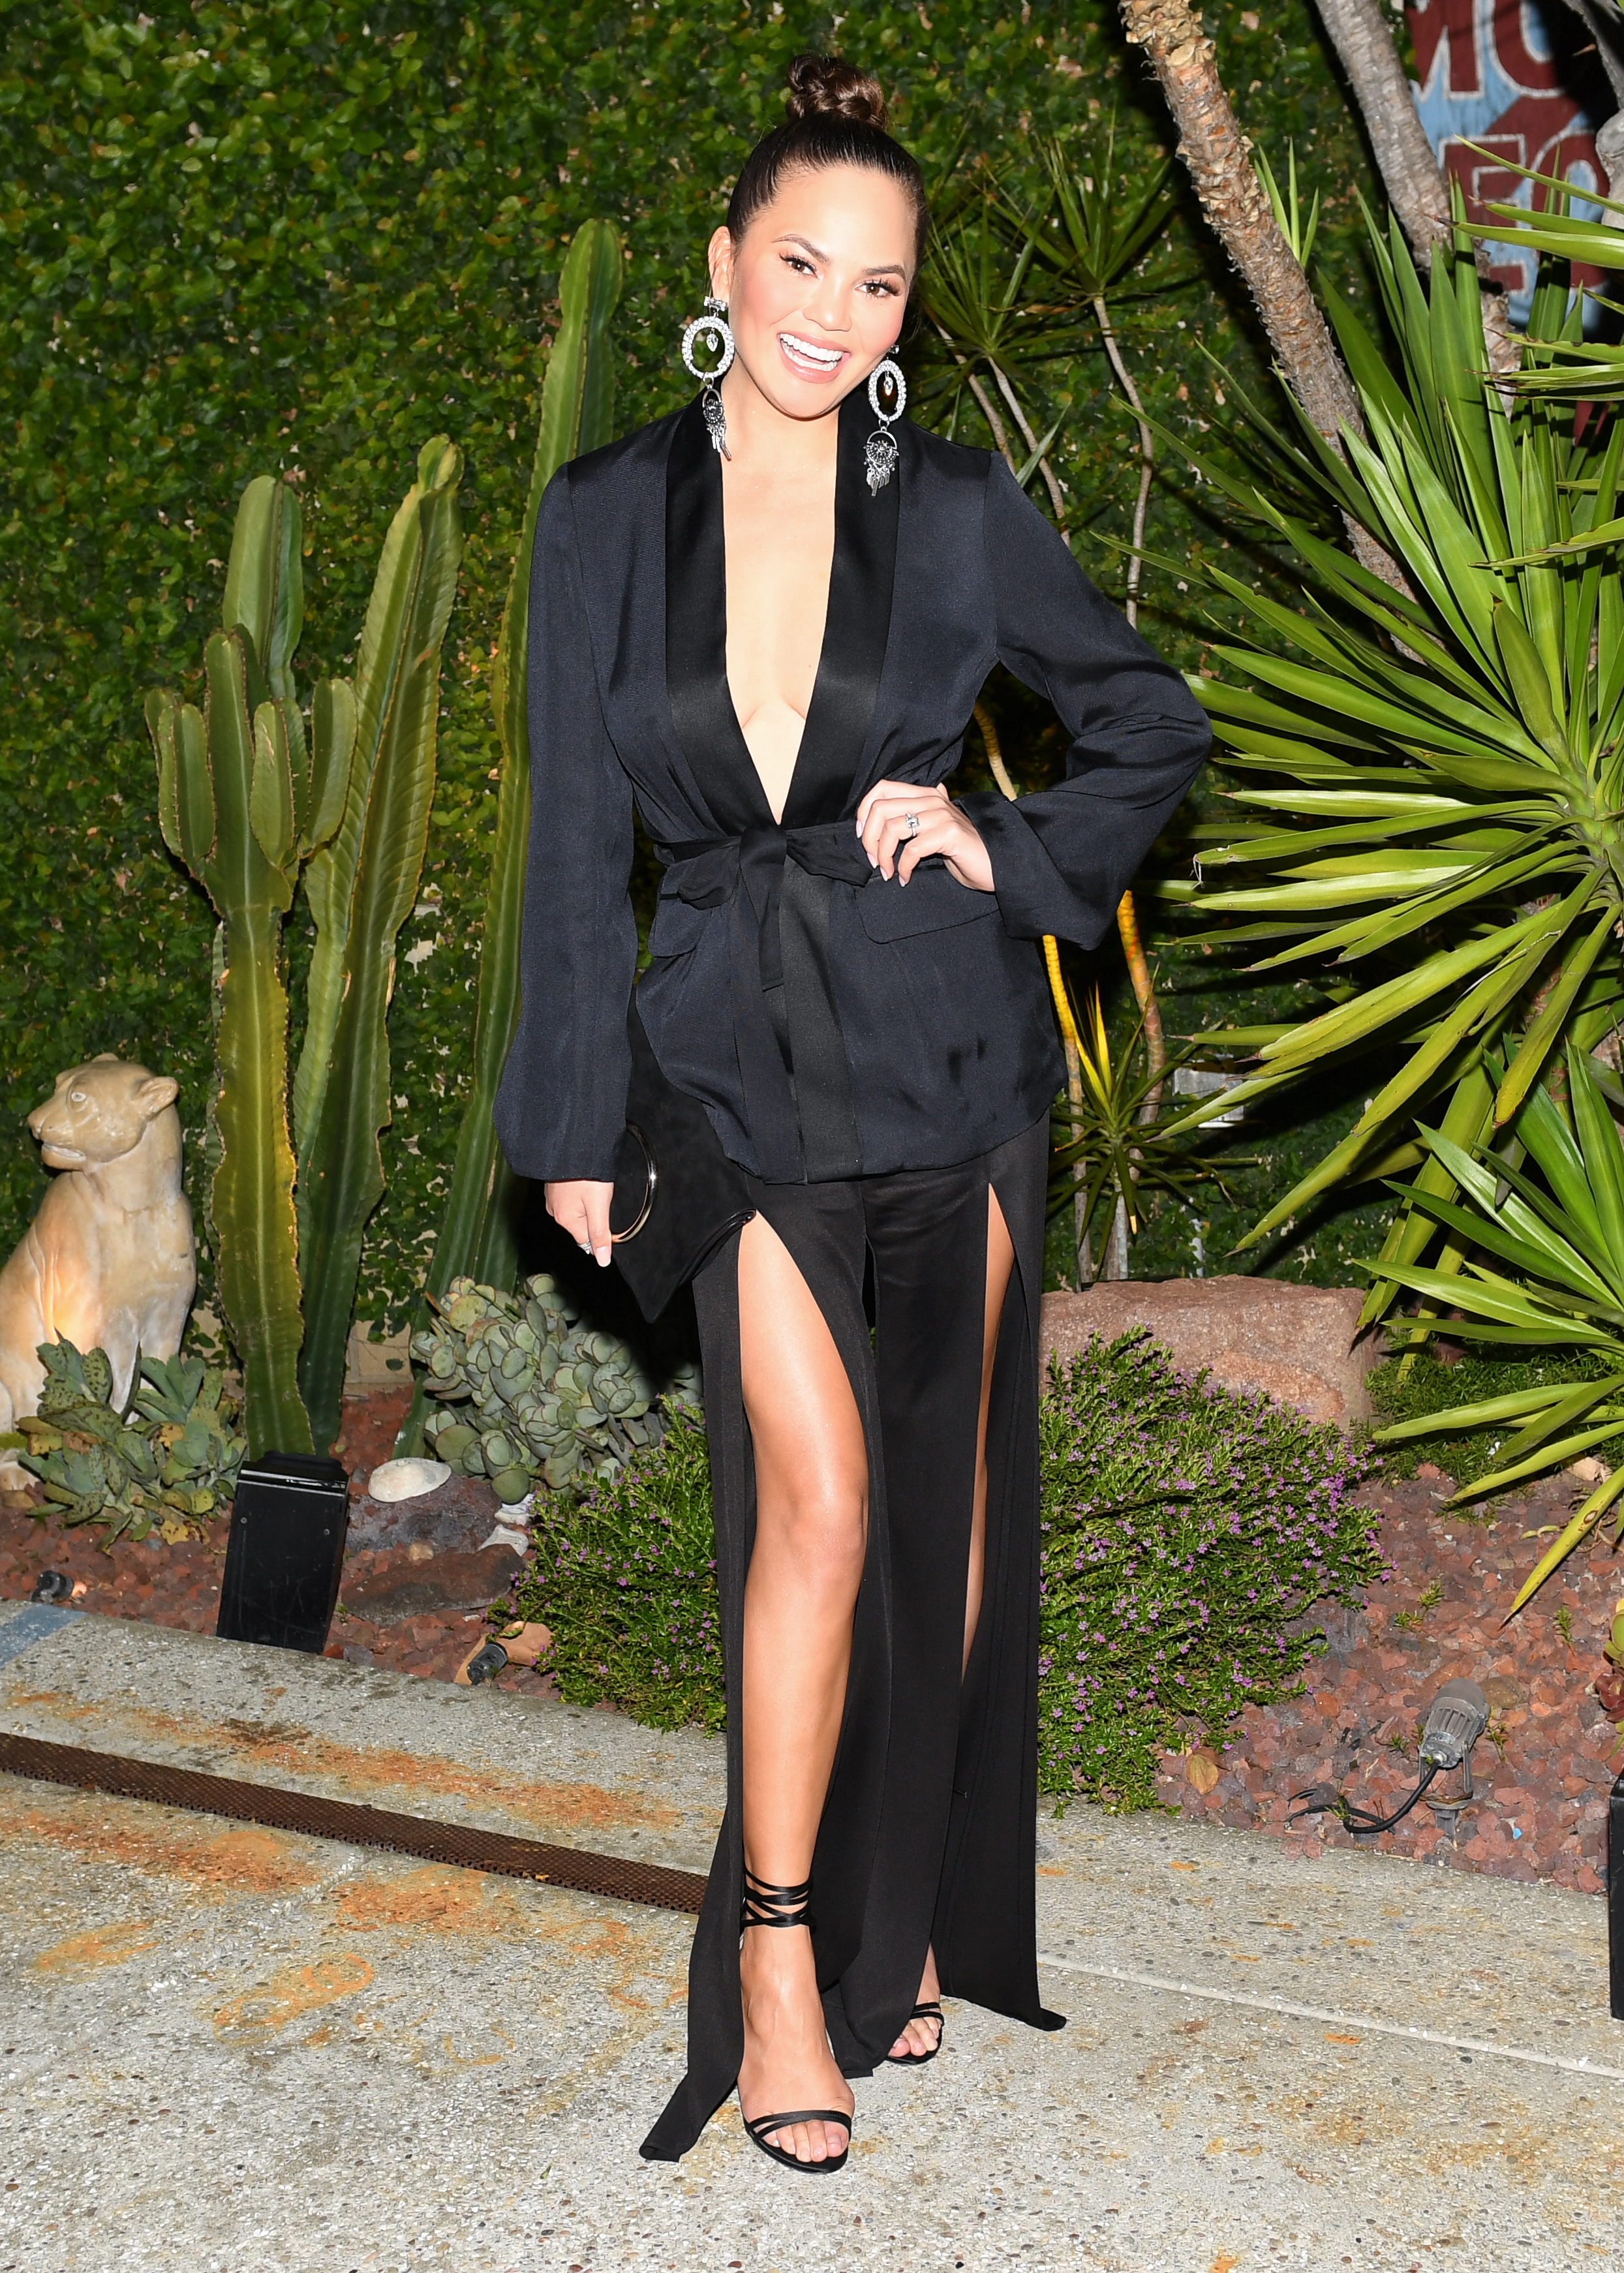 "<p>If you're waiting for confirmation that sliced pants are the new bell sleeves, or high-waisted jeans, then Chrissy Teigen just delivered it at an exclusive dinner for H&M in Los Angeles.</p> <p>Having already survived a wardrobe malfunction last year due to a slit dress at the AMAs, the wife of John Legend played it safer at the celebration for the H&M Conscious Exclusive Collection. The range makes use of sustainable fabrics.</p> <p>Chrissy was joined by Orlando Bloom, Hailey Baldwin, Kate Mara, Sasha Lane and Lucky Blue Smith all dressed in the Conscious Exclusive collection, available online at <a href=""http://www.hm.com/au/"" target=""_blank"">hm.com</a> from April 20.</p> <p>""I am proud to be the face of the H&M Conscious Exclusive campaign,"" said supermodel Natalia Vodianova. ""It's amazing to see the advances in sustainable fabrics that are used in the collection, pointing towards a more sustainable future for all fashion."" </p> <p > ""Conscious Exclusive is a chance to dream and create pieces that are both edgy and beautiful. It's great to be able to show just what is possible with sustainable materials like we have done with the delicate plissé dress,"" says Ann-Sofie Johansson, Creative Advisor at H&M.</p> <p>The dinner was held at SmogShoppe, a sustainably designed urban spaces.</p>"